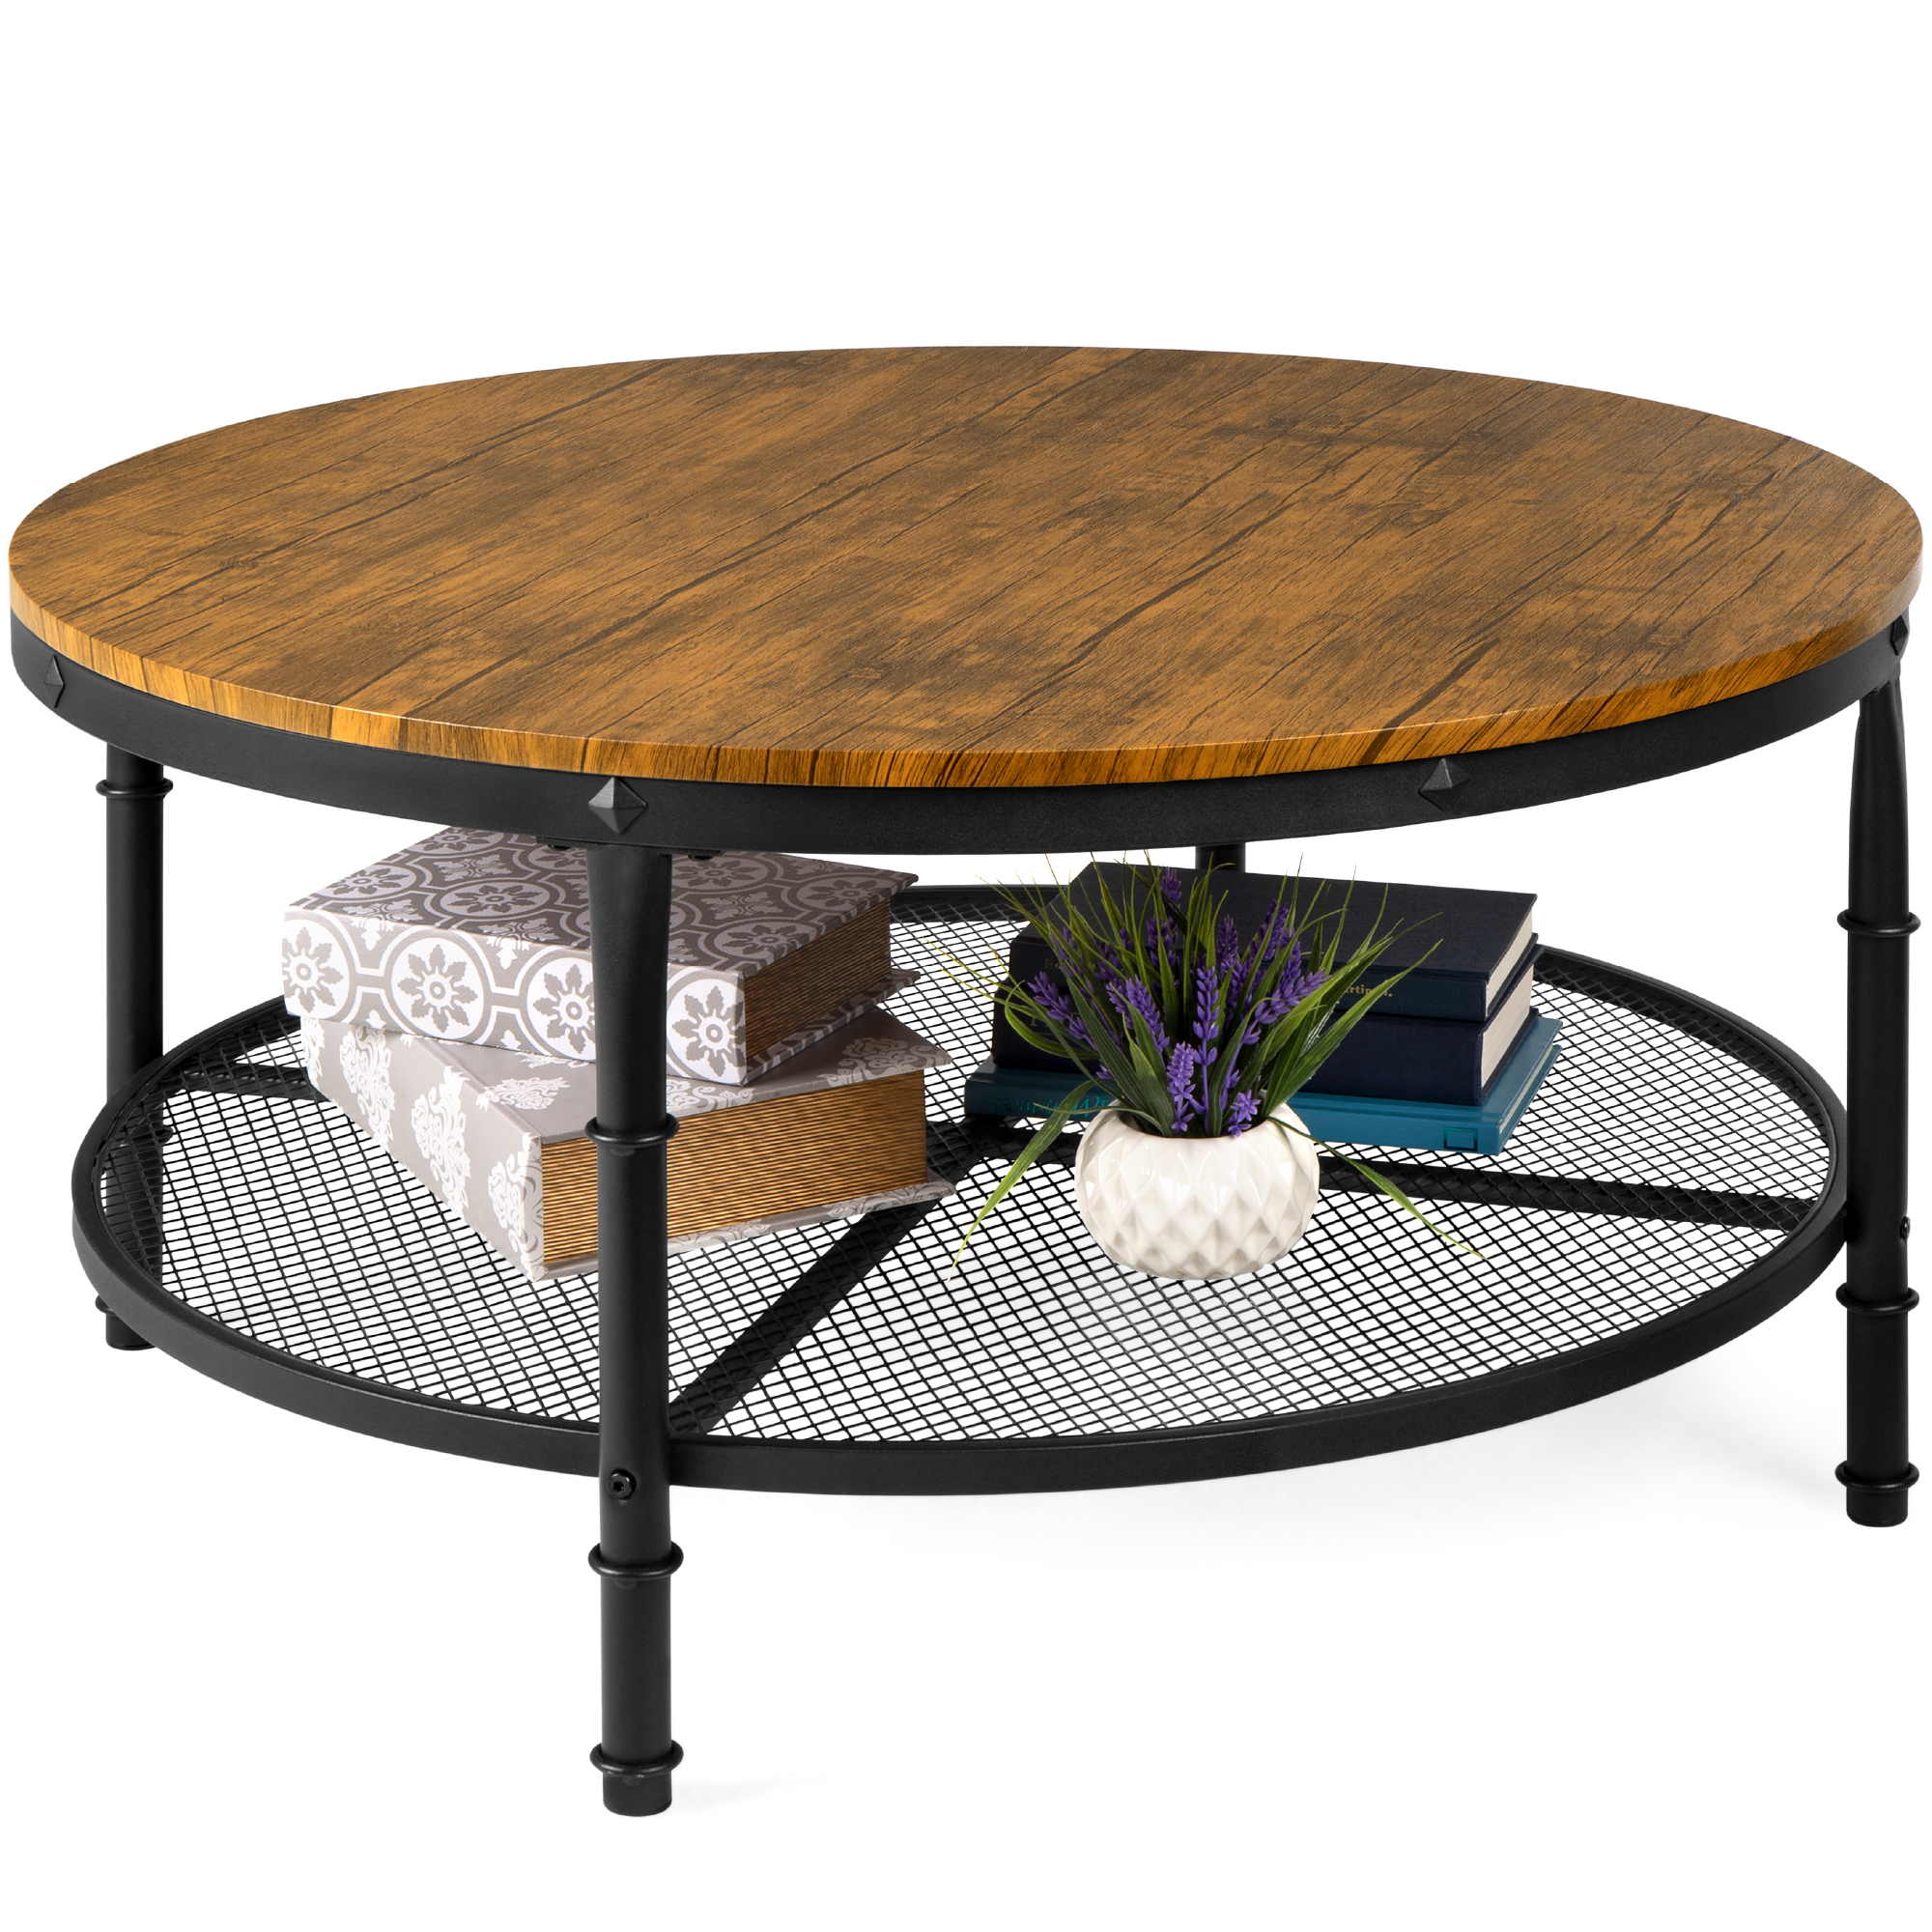 best choice products 2 tier round coffee table rustic steel accent table w wooden tabletop padded feet open shelf walmart com